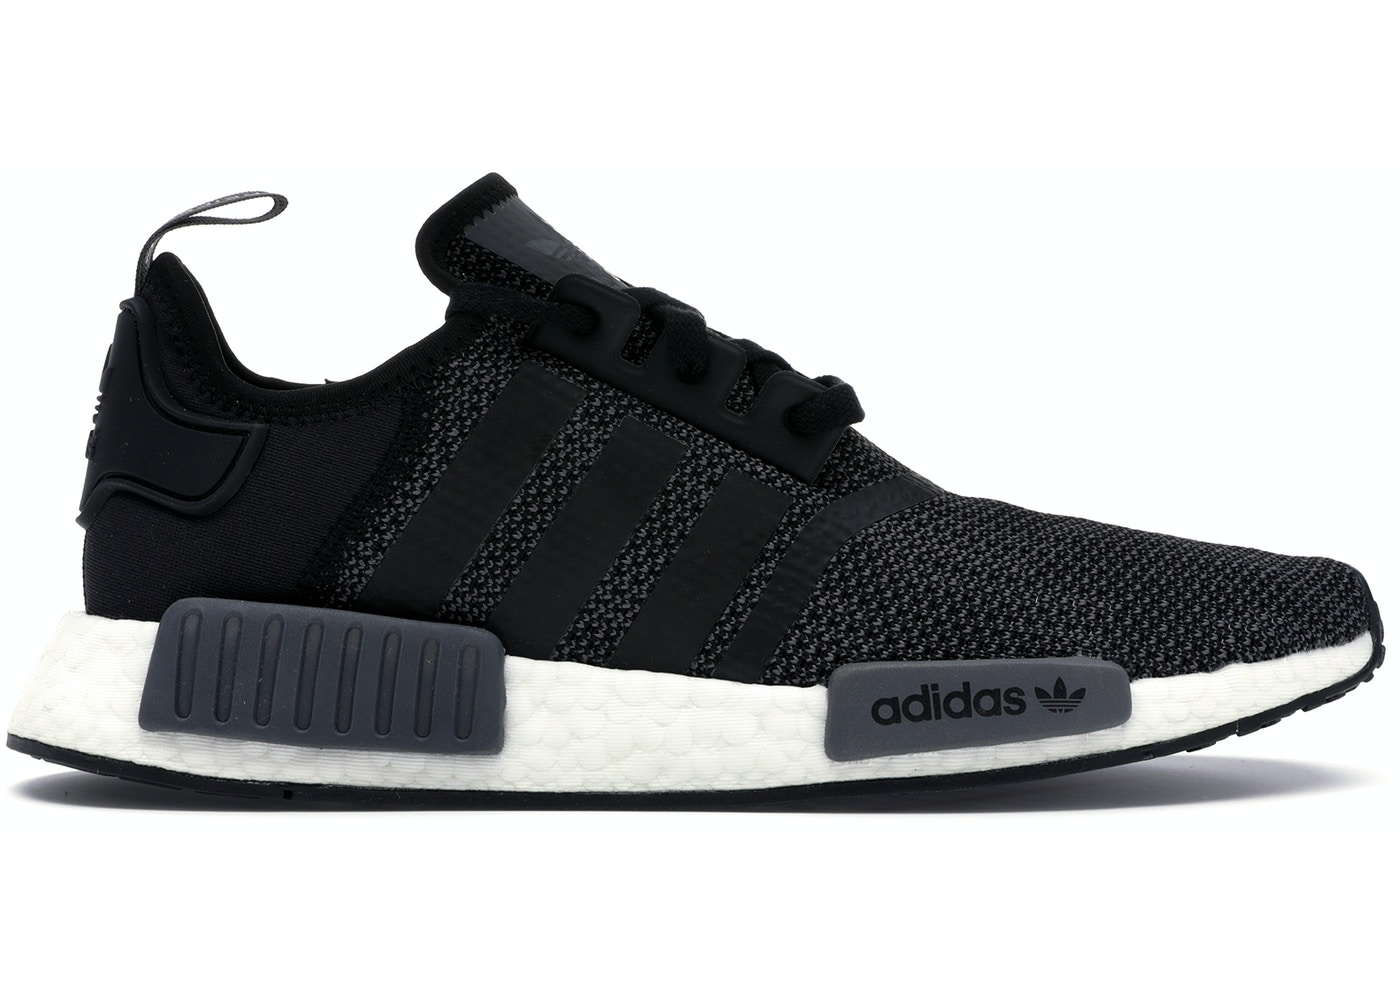 5cbdb2f9 Buy adidas NMD R1 Shoes & Deadstock Sneakers